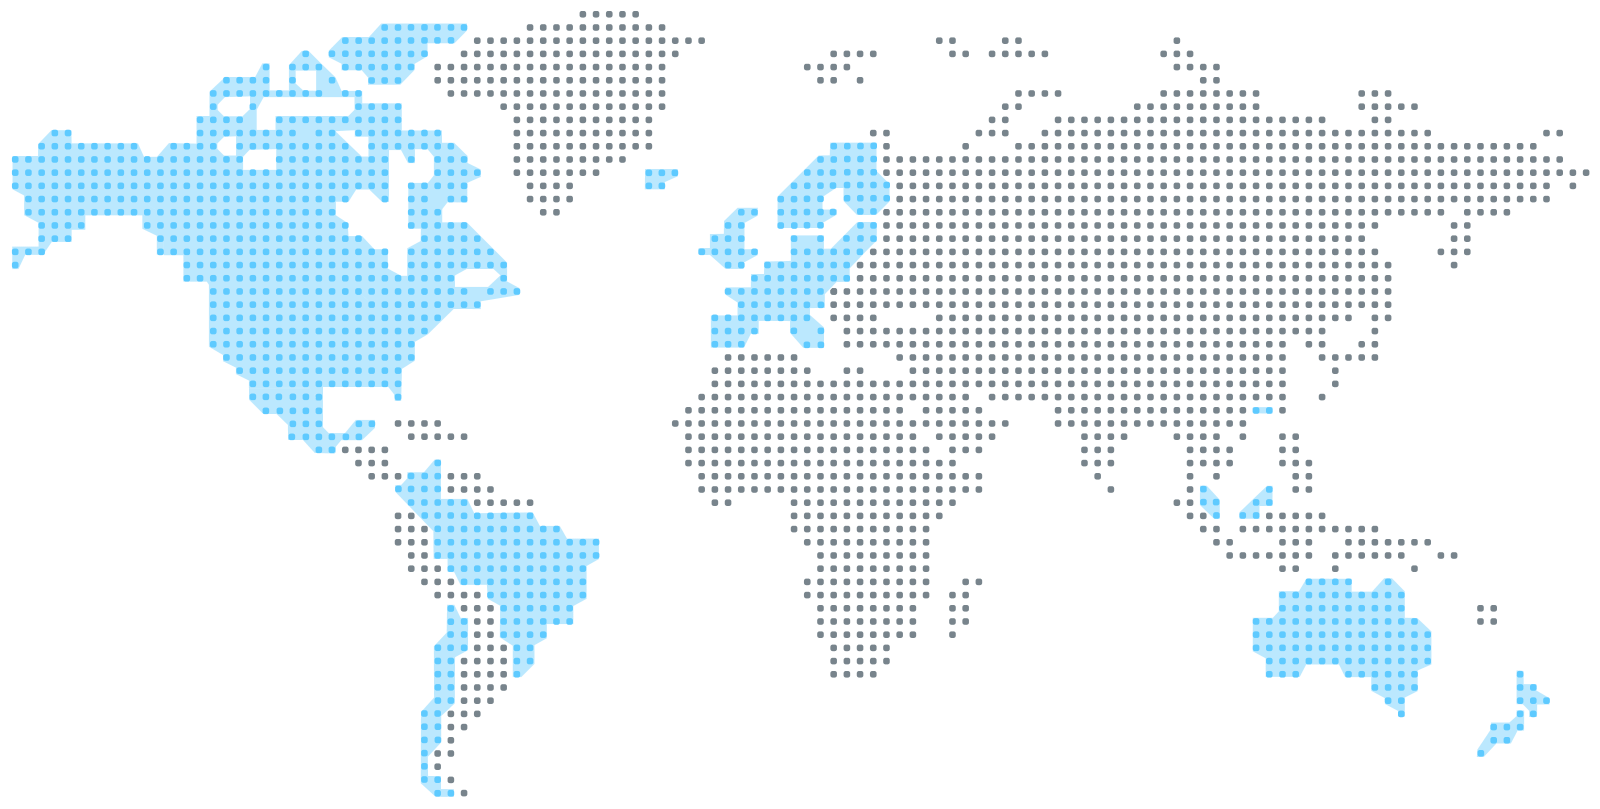 Maps Vector Digital World Transparent & PNG Clipart Free ... on internet of the world, digital map art, destination of the world, thematic maps of the world, digital world background, atlas of the world, cartography of the world, blue technology world, digital global map, wallpaper of the world, weather radar of the world, digital map usa, digital butterfly,